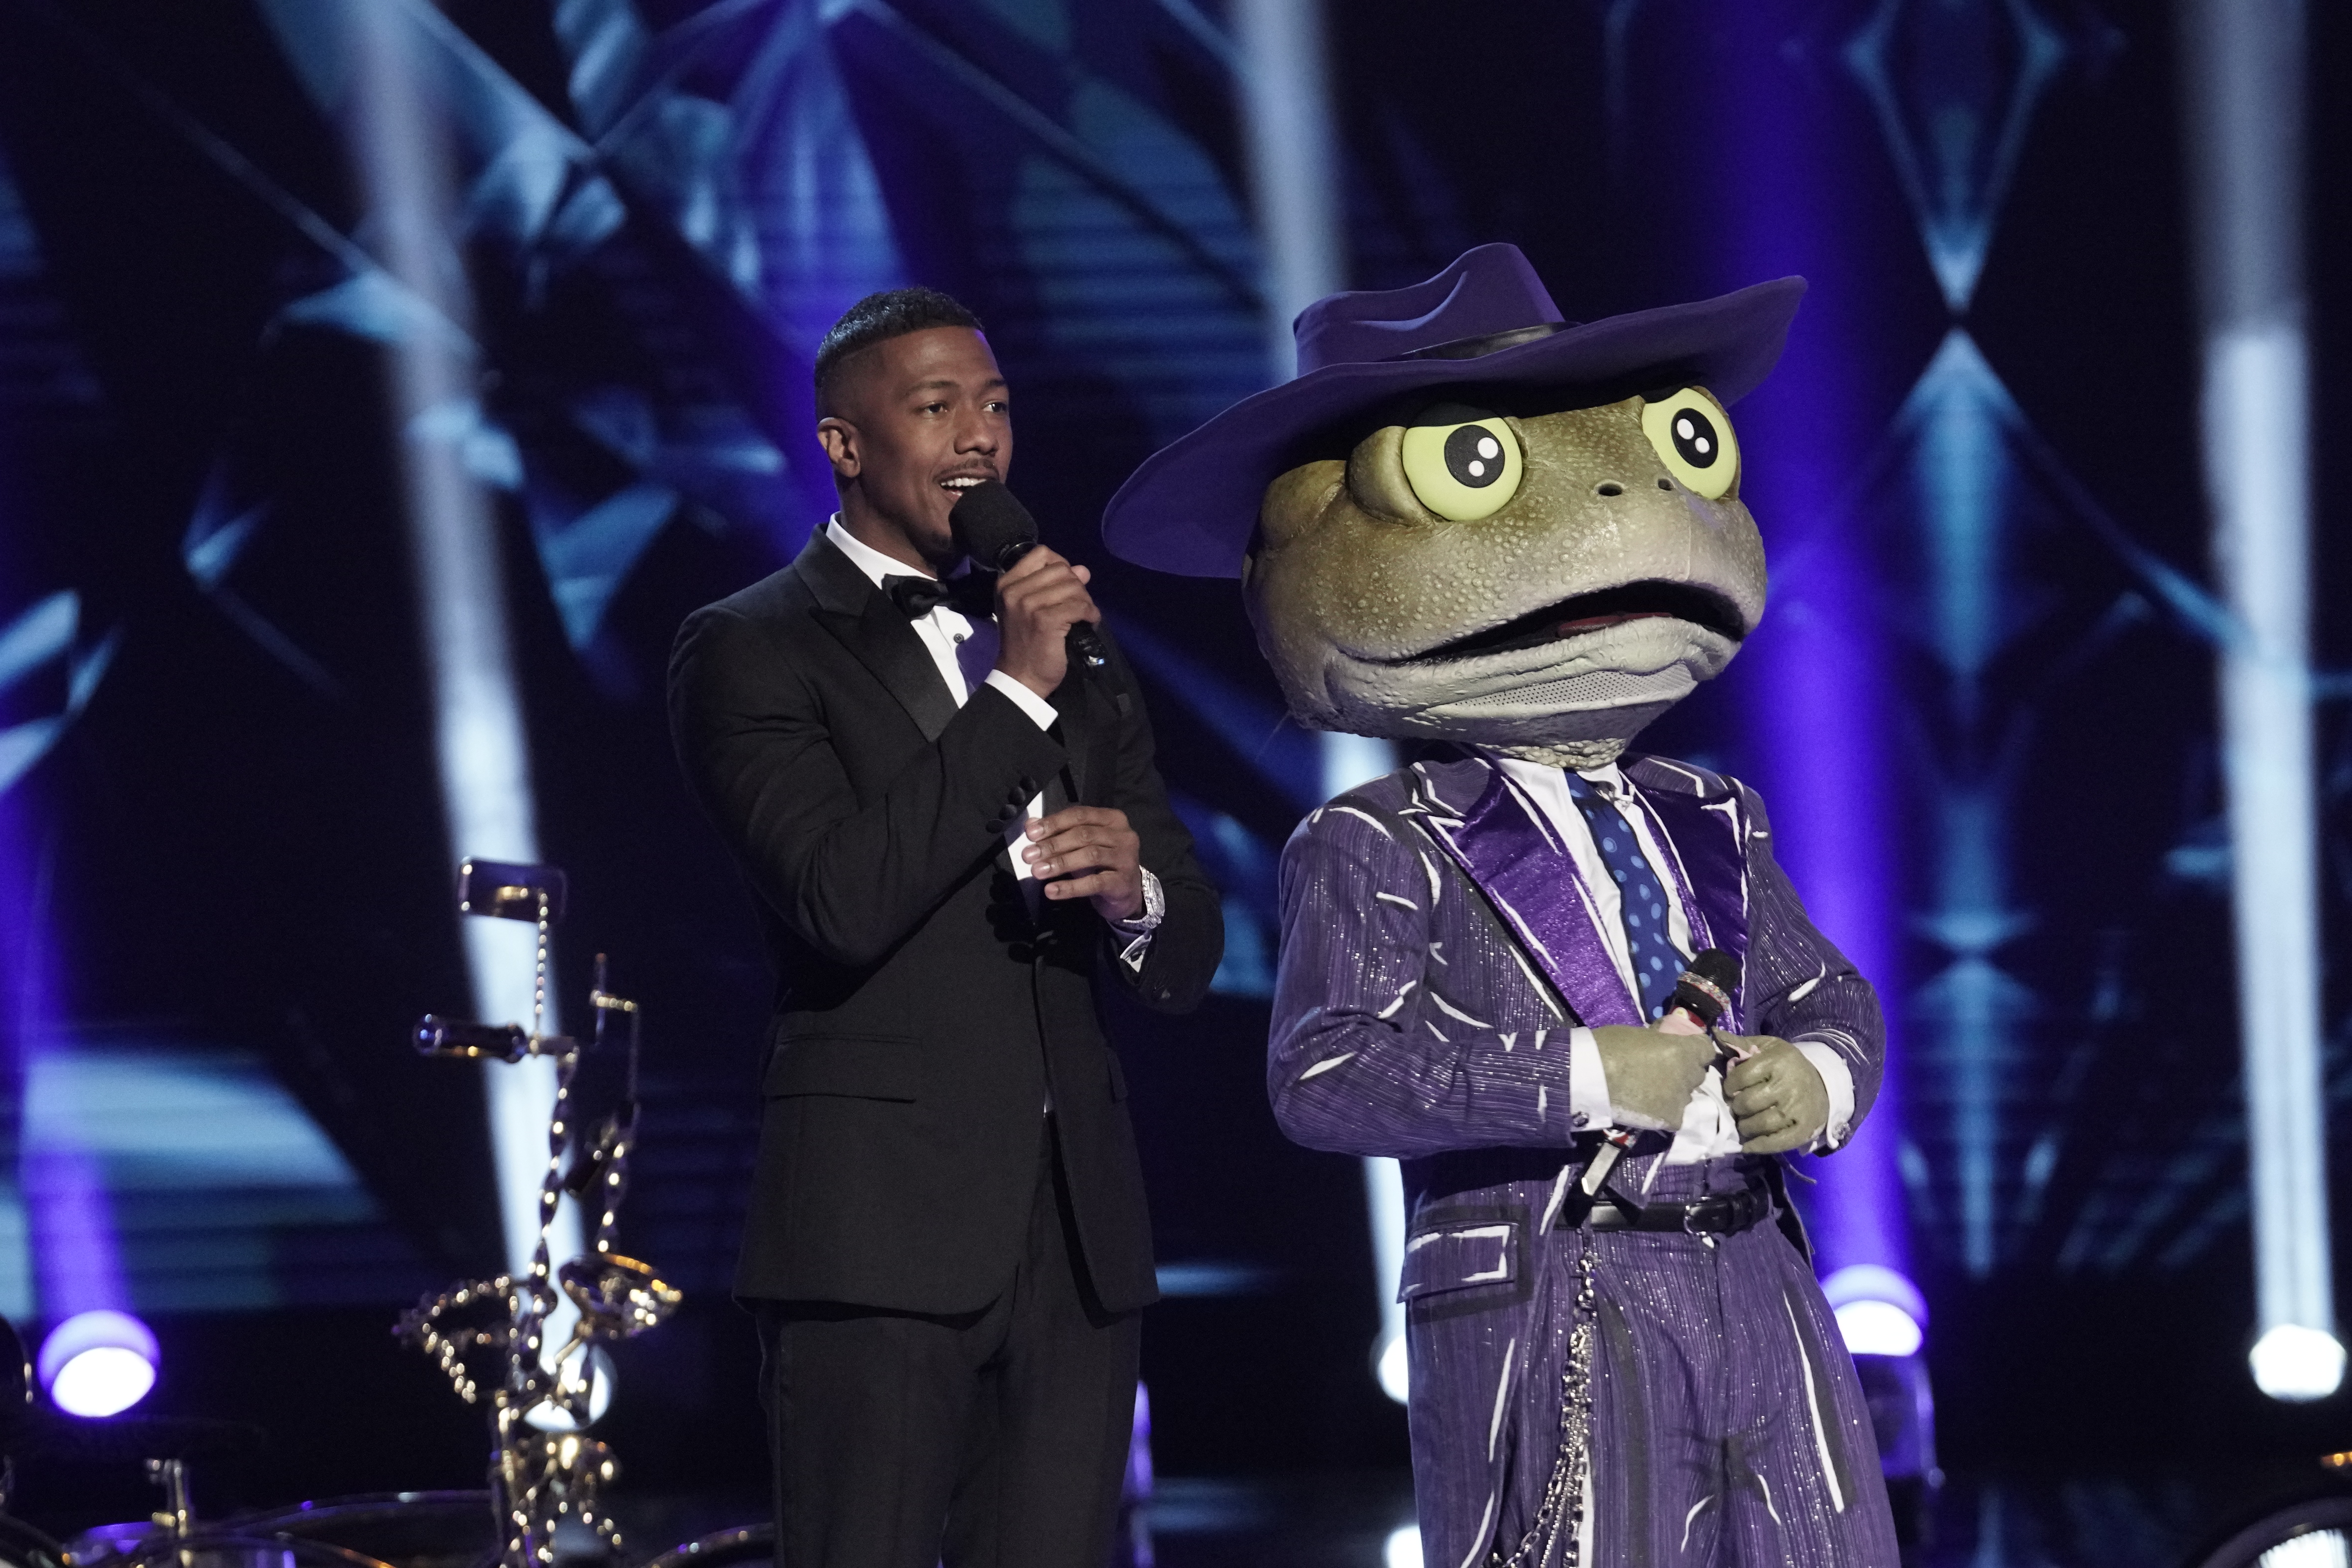 'The Masked Singer' Enters Emmy Reality Race, Scores First Major Nod For Fox Alternative Entertainment